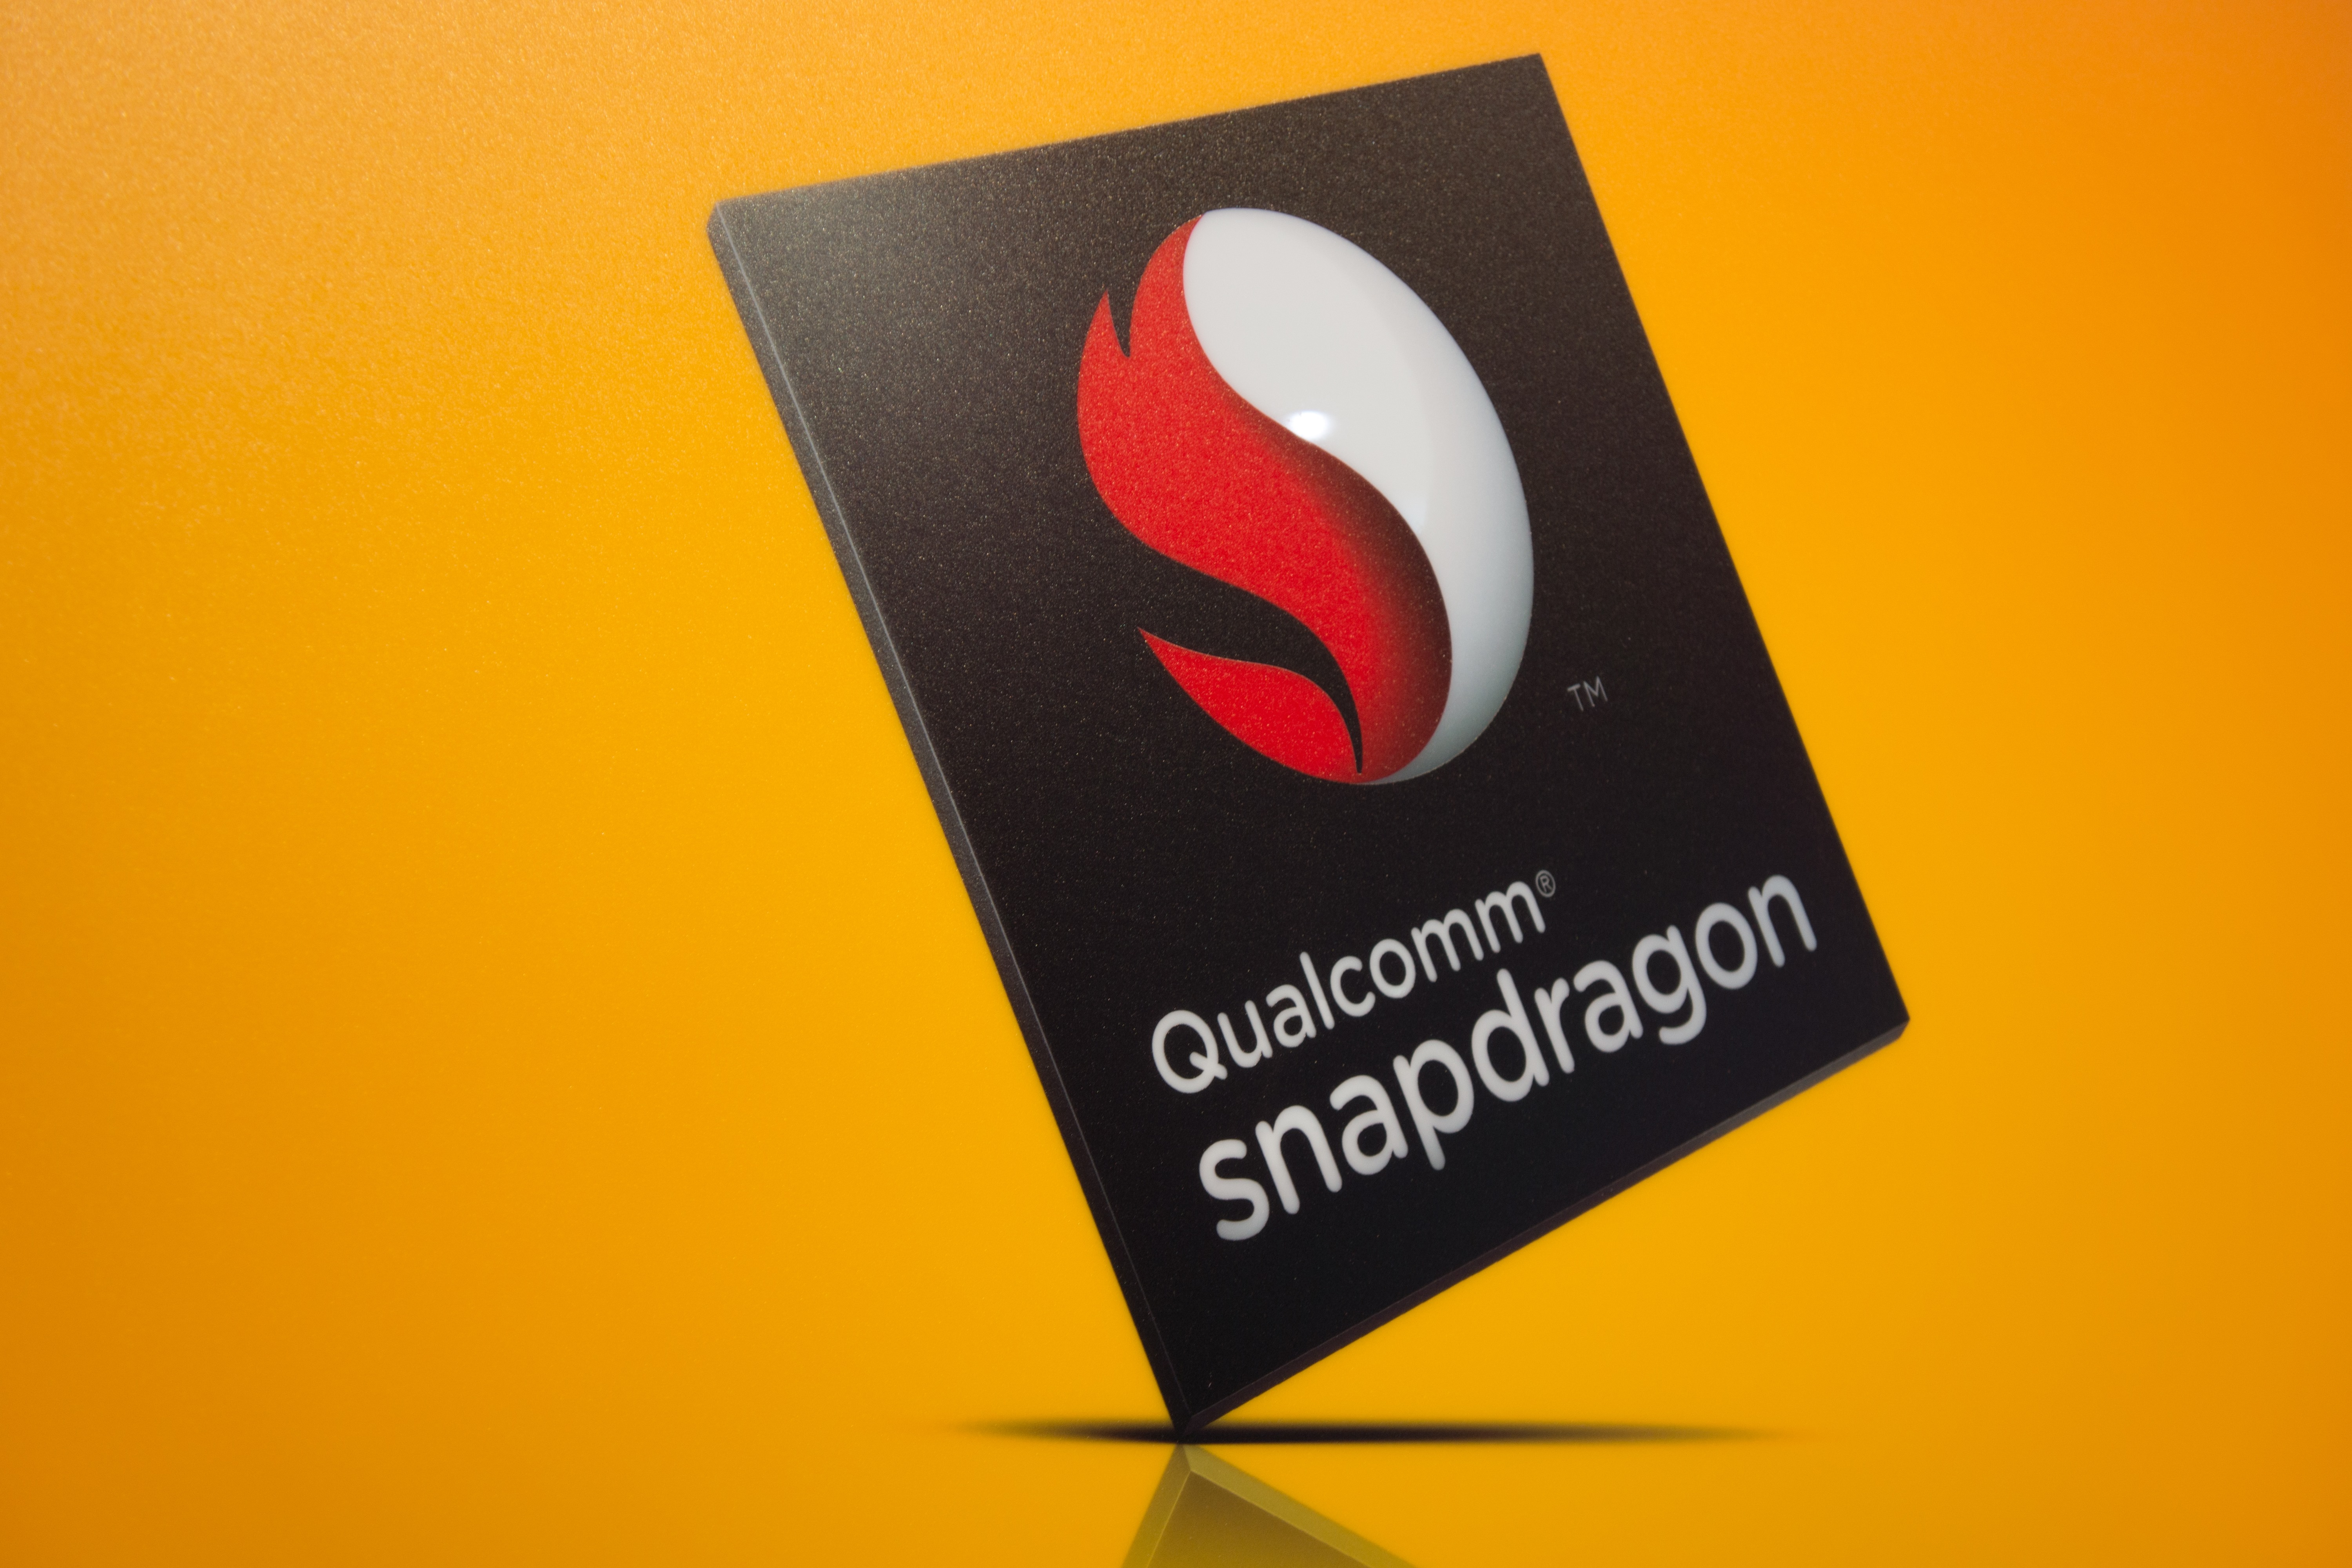 Qualcomm Announces New Adreno 530 And 510 GPUs, Says First Snapdragon 820  Devices Will Arrive In 2016